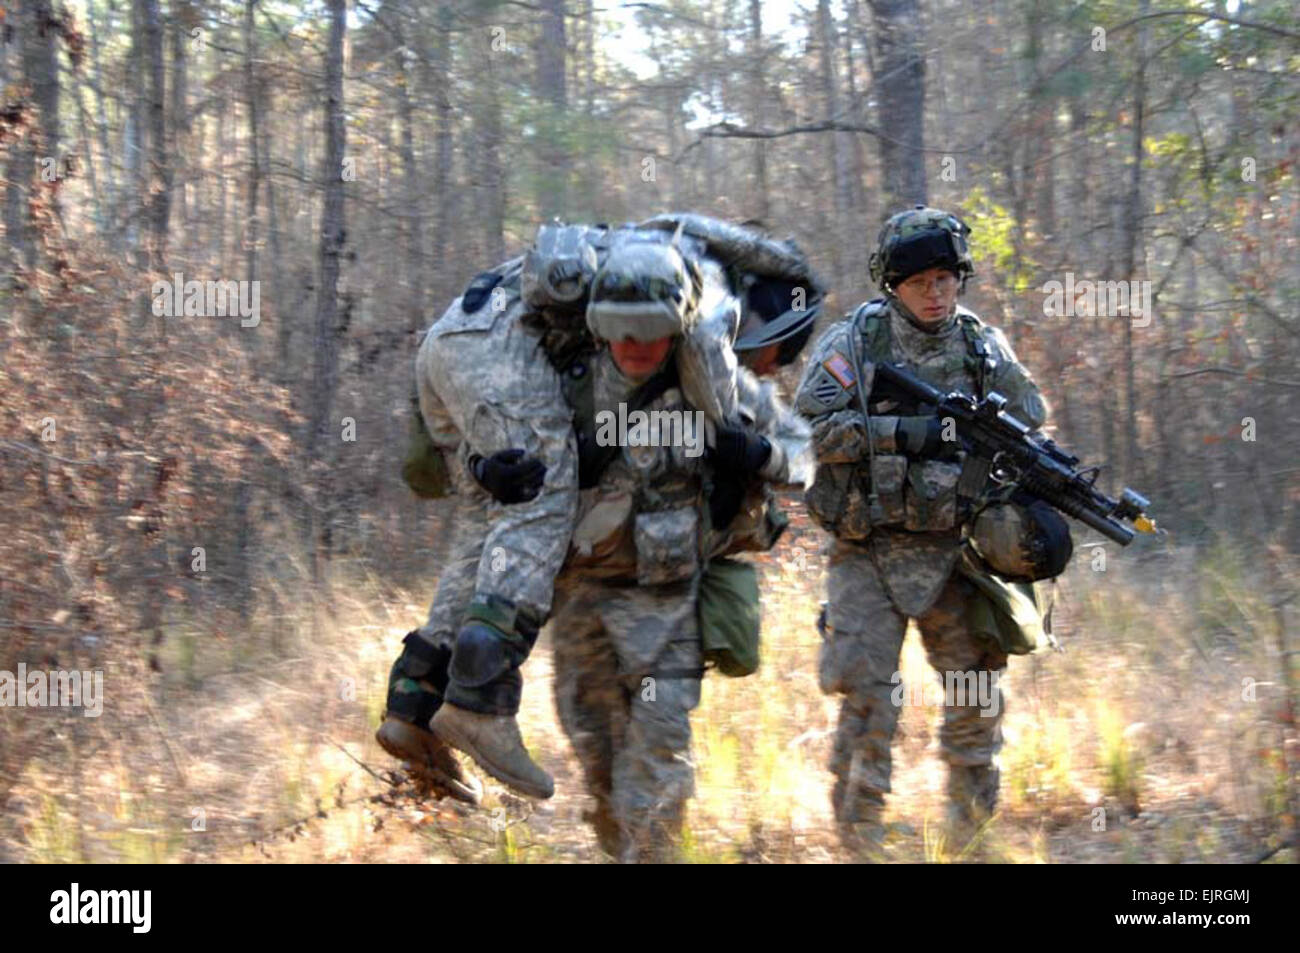 U.S. Army Soldiers from Bravo Company, 1st Battalion, 30th Infantry Regiment, 3rd Infantry Division carry a mock - Stock Image